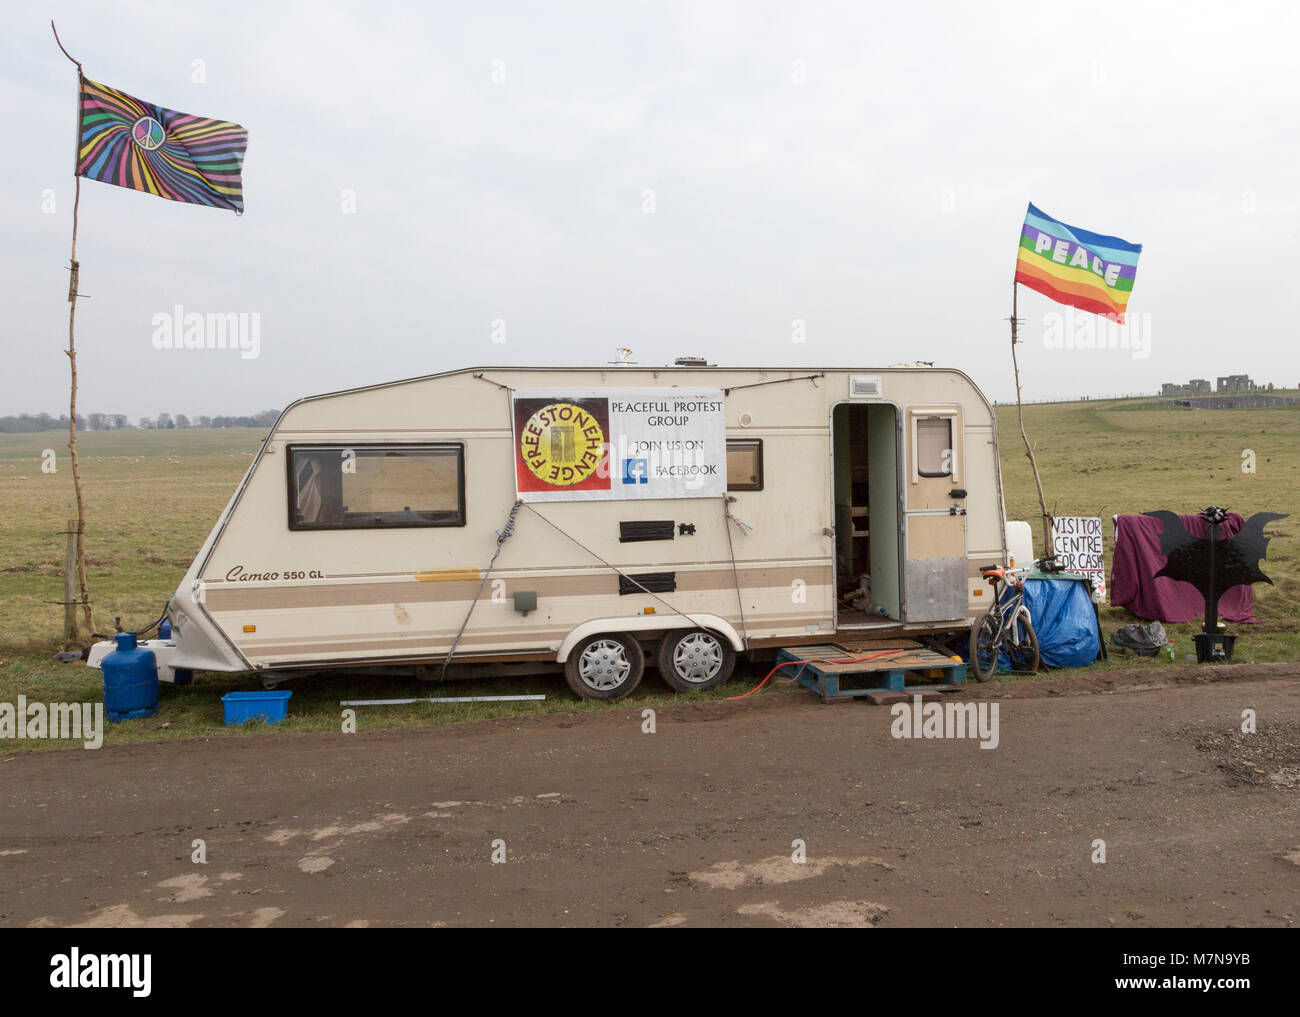 Caravan campaign banner Peace flag for 'Free Stonehenge, access campaign, Stonehenge, Wiltshire, England, UK - Stock Image